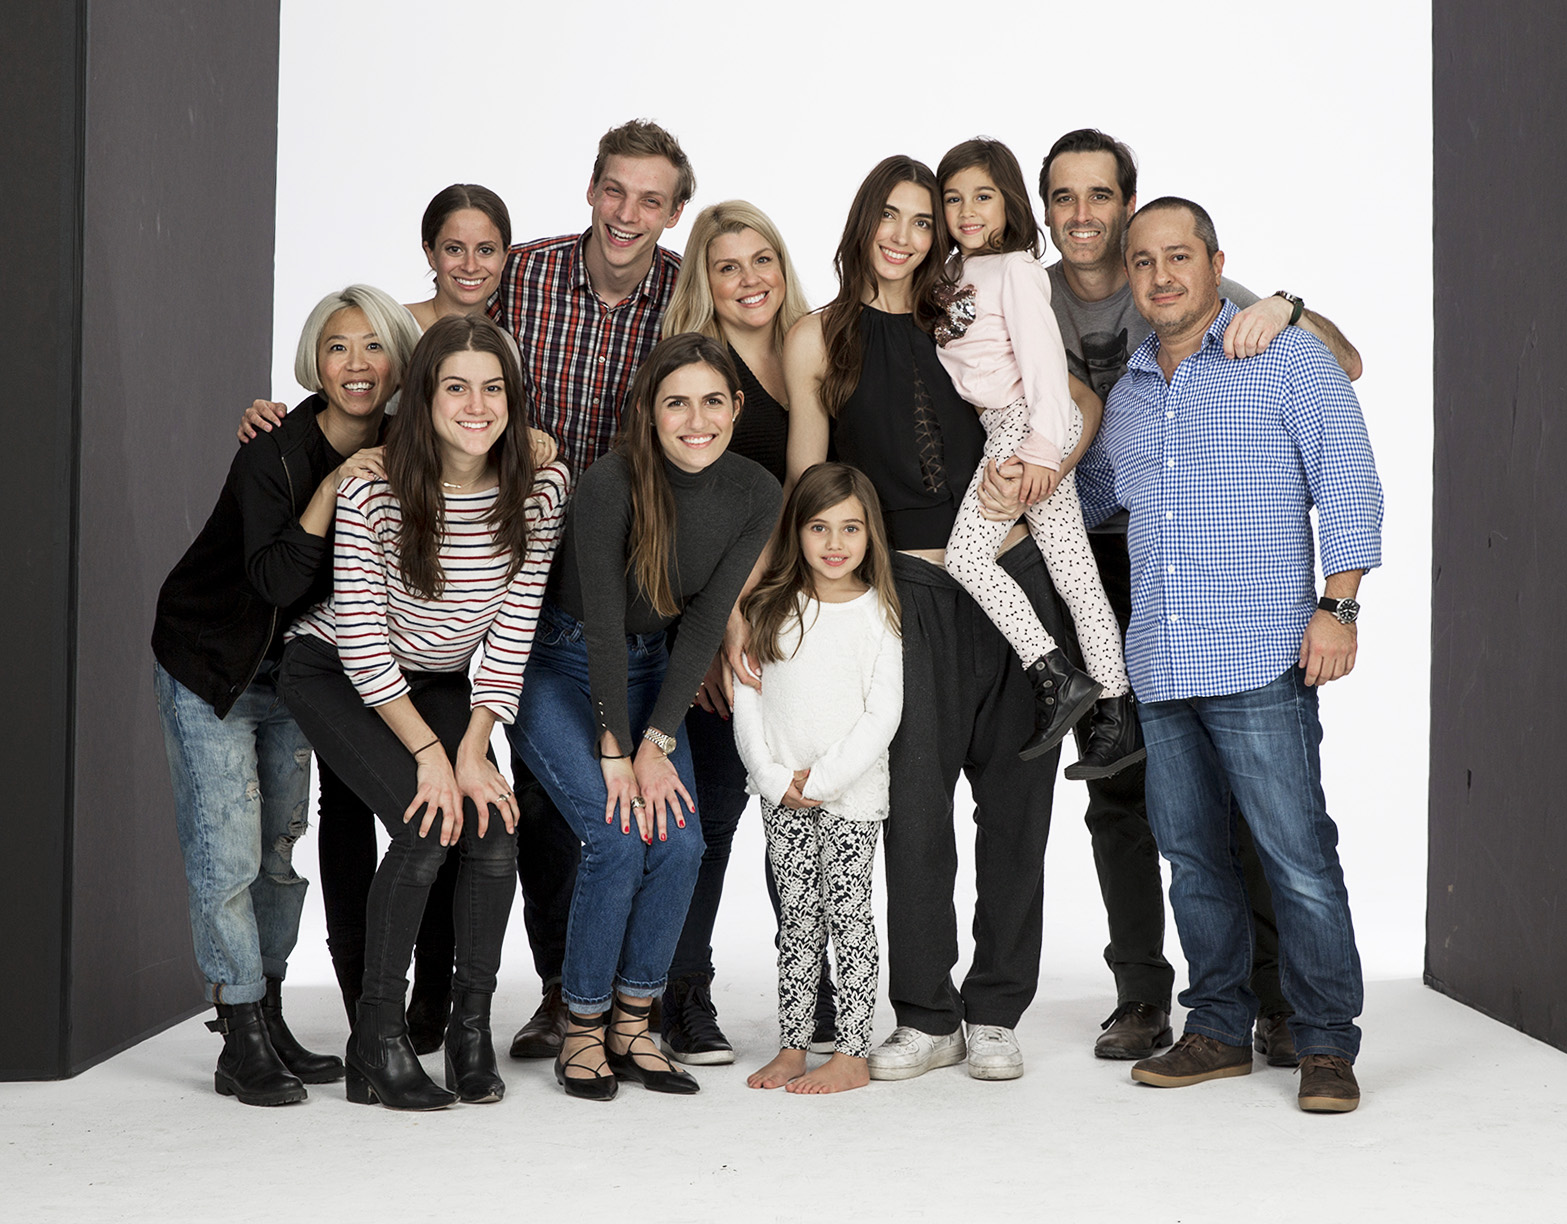 Nick Khazal and team pose for a photo after wrapping a shoot in New York city.